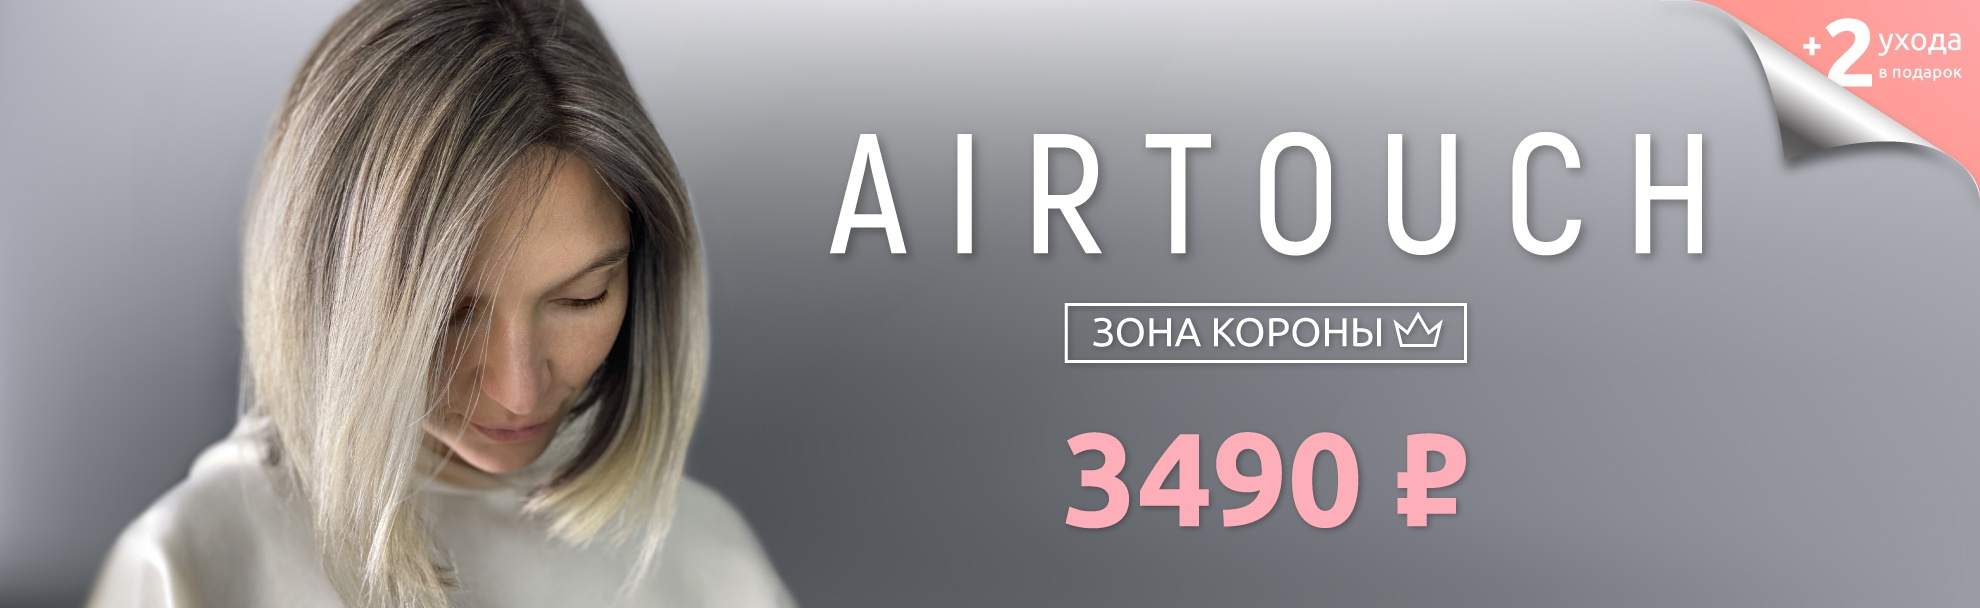 AIRTOUCH 3490